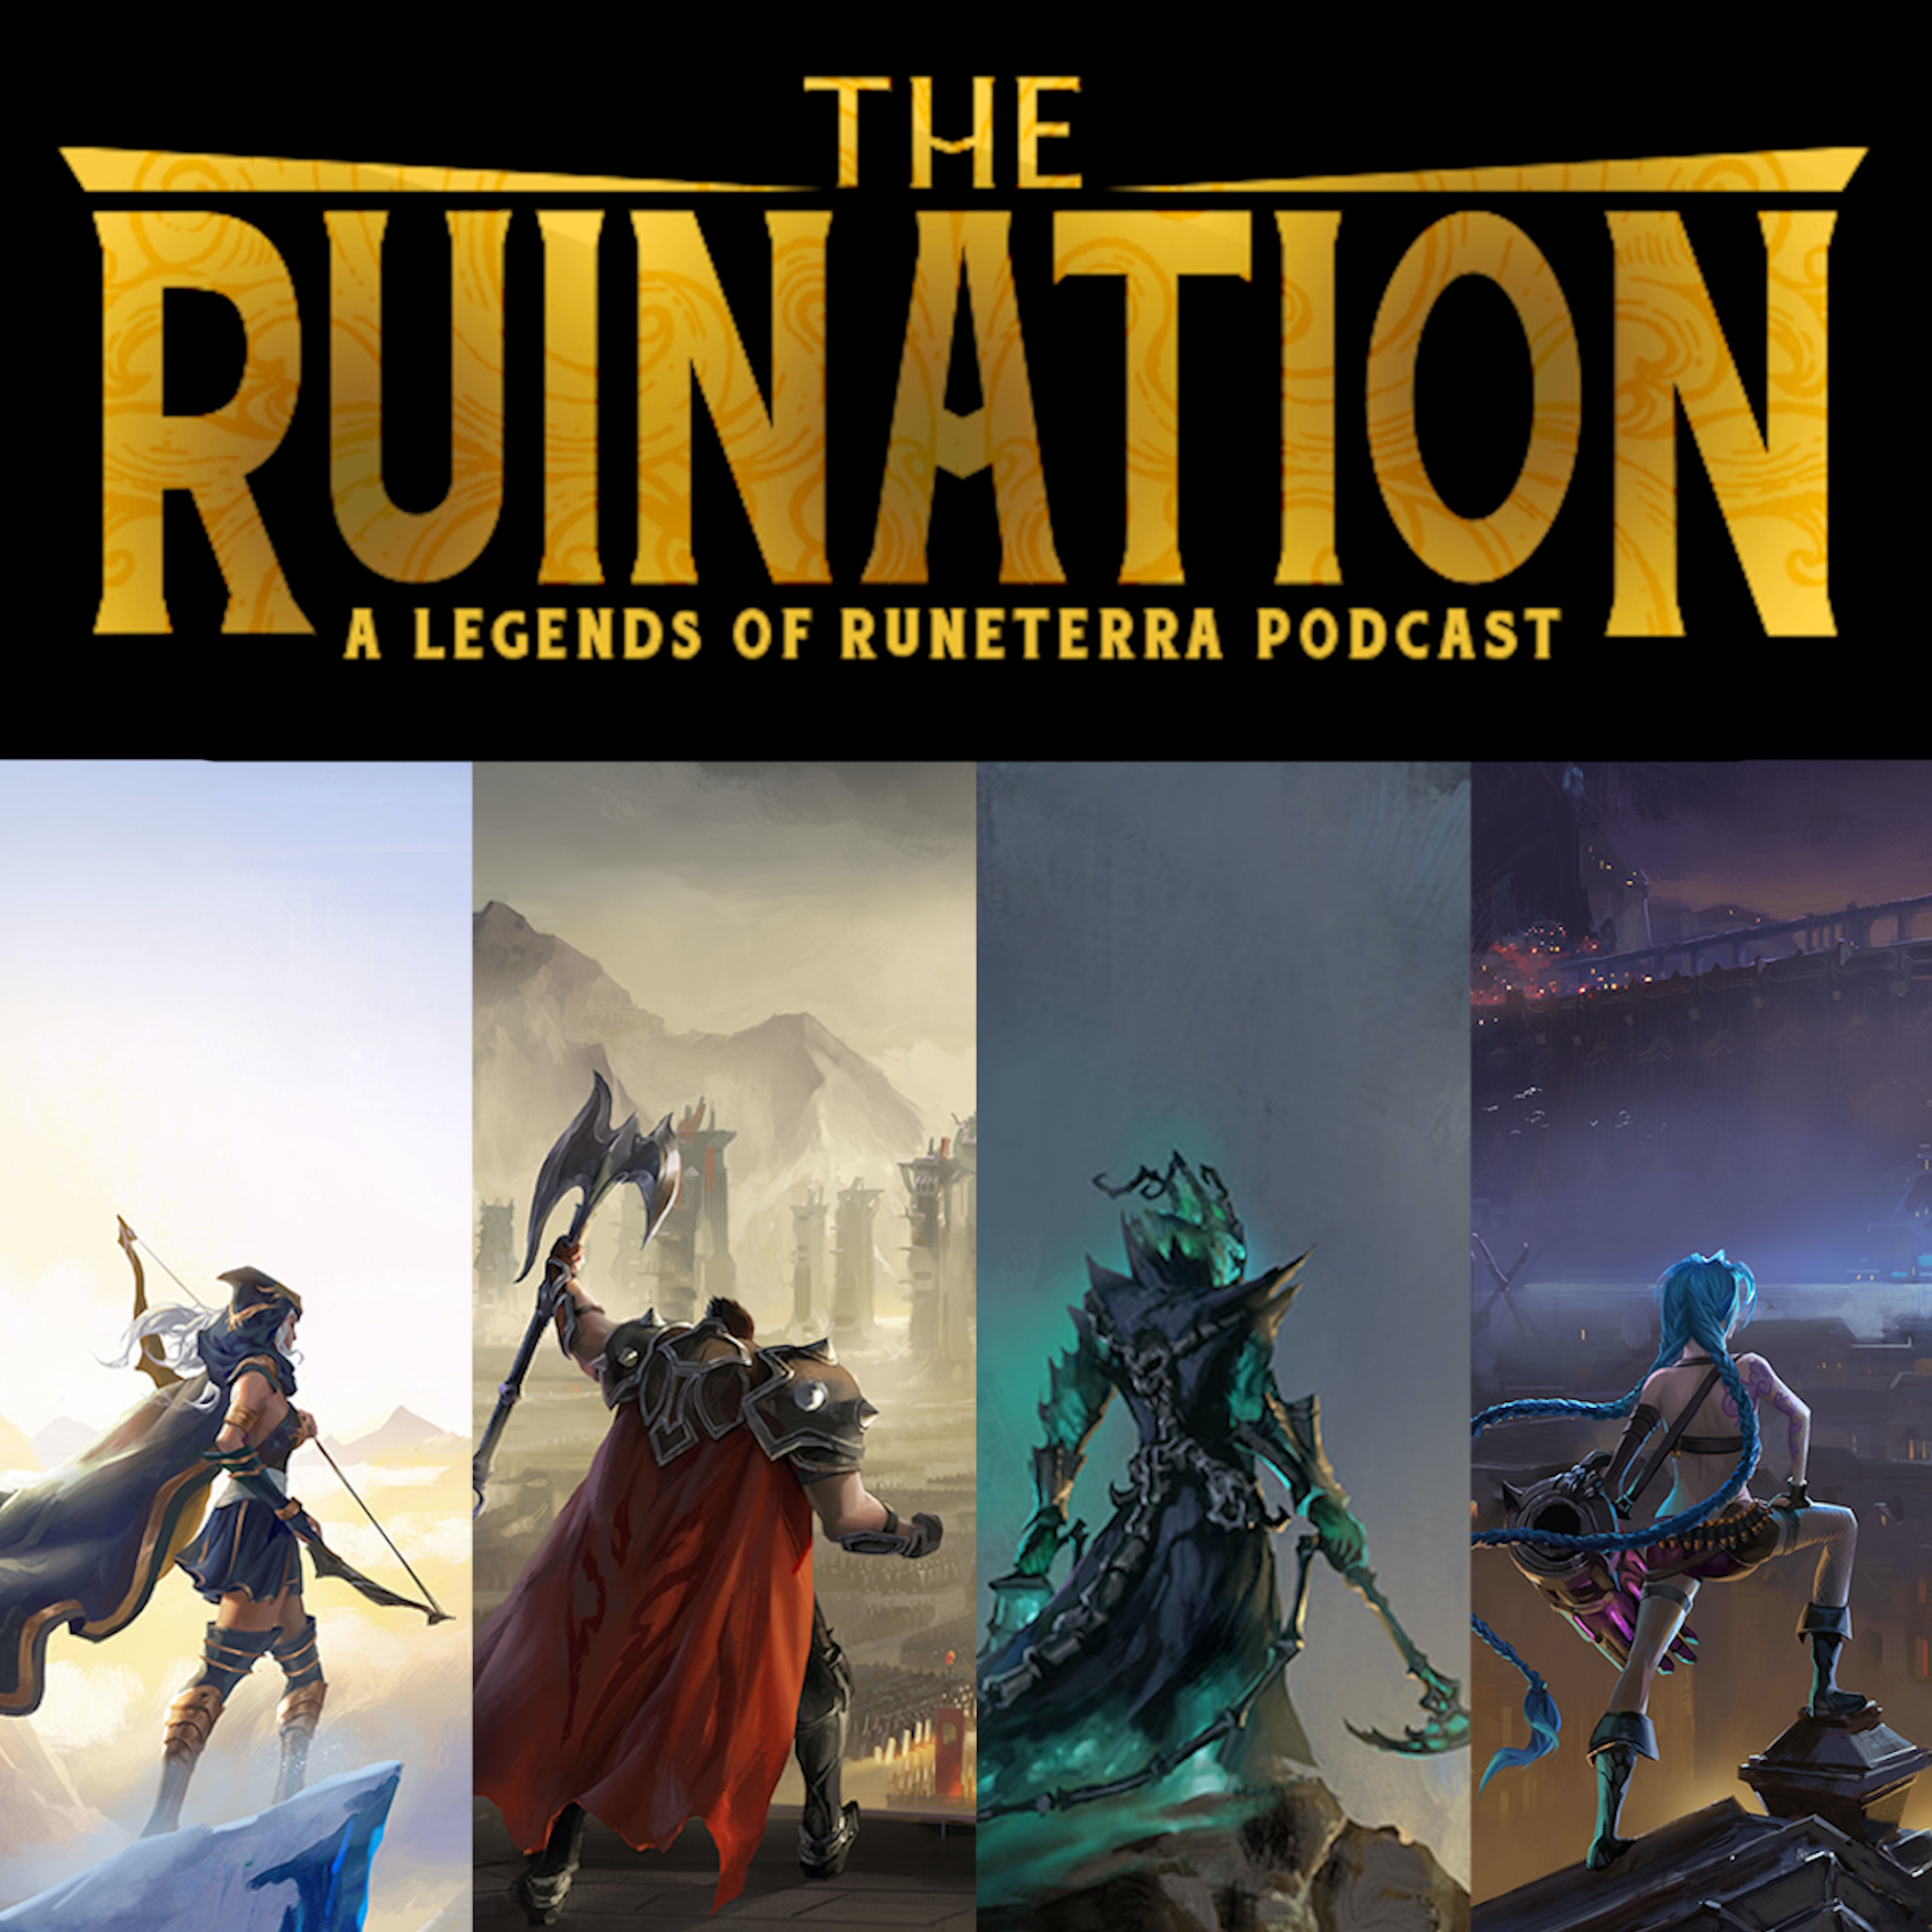 The Ruination | A Legends of Runeterra Podcast